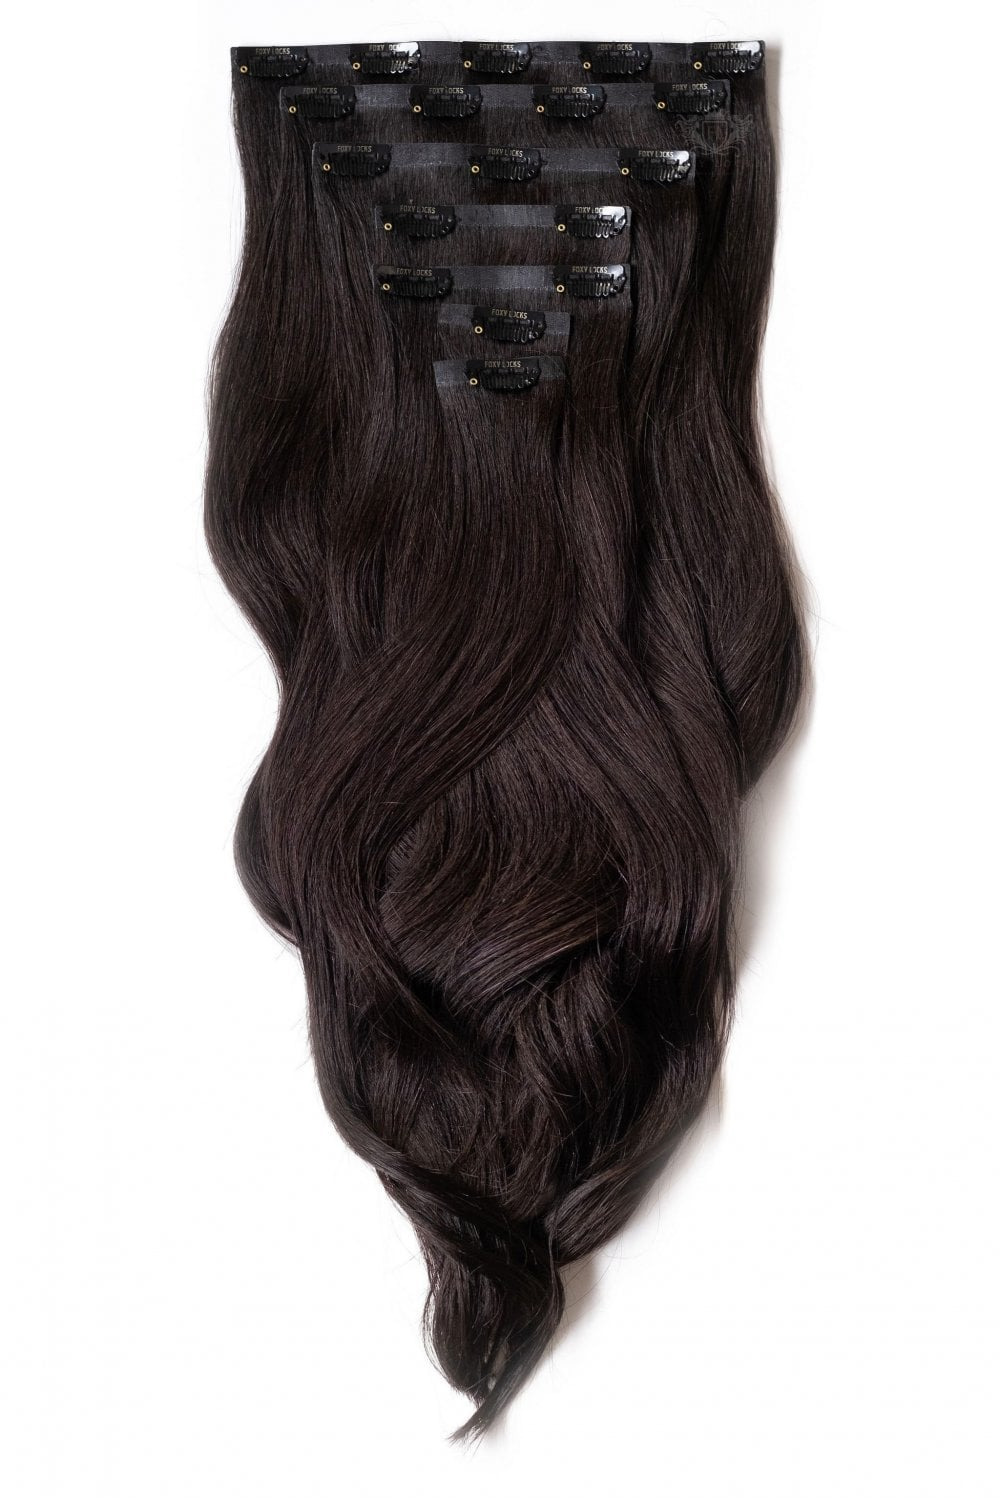 Brown black superior seamless 22 clip in human hair extensions 230g brown black superior 22 seamless clip in human hair extensions pmusecretfo Image collections